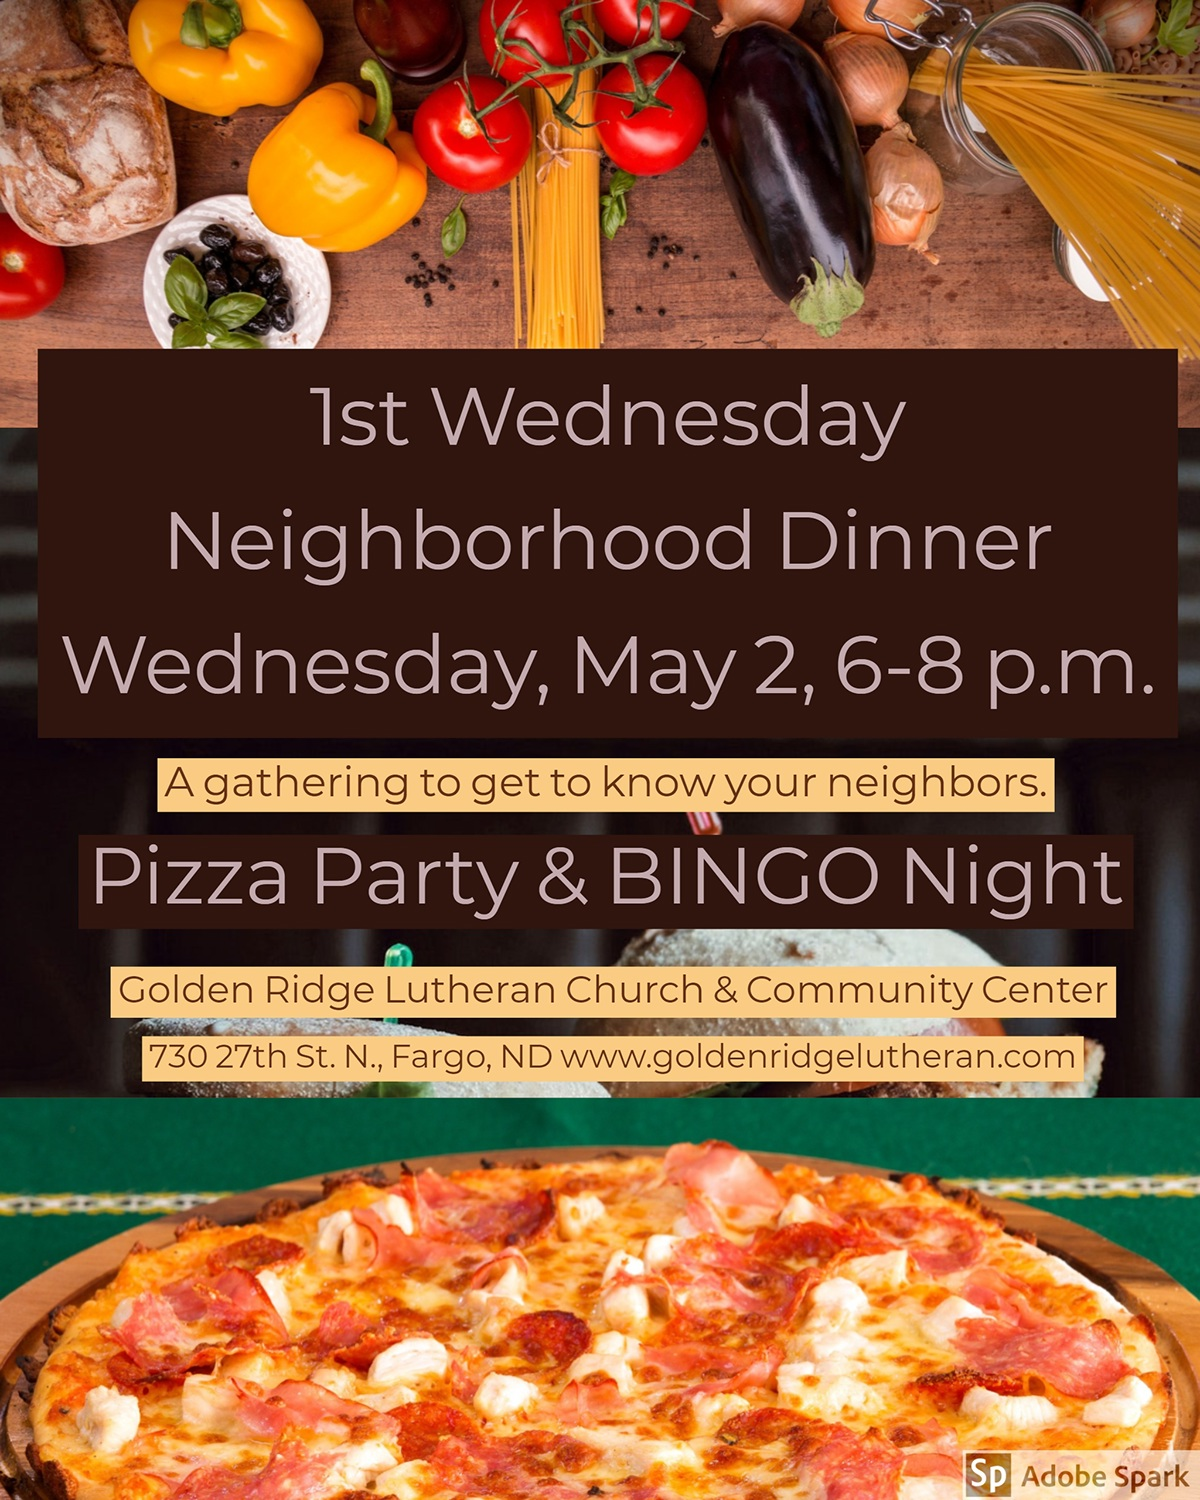 1st Wednesday  Neighborhood Dinner Wednesday, May 2, 6-8 p.m.  1st Wednesday  Neighborhood Dinner  Wednesday, May 2, 6-8 p.m.  